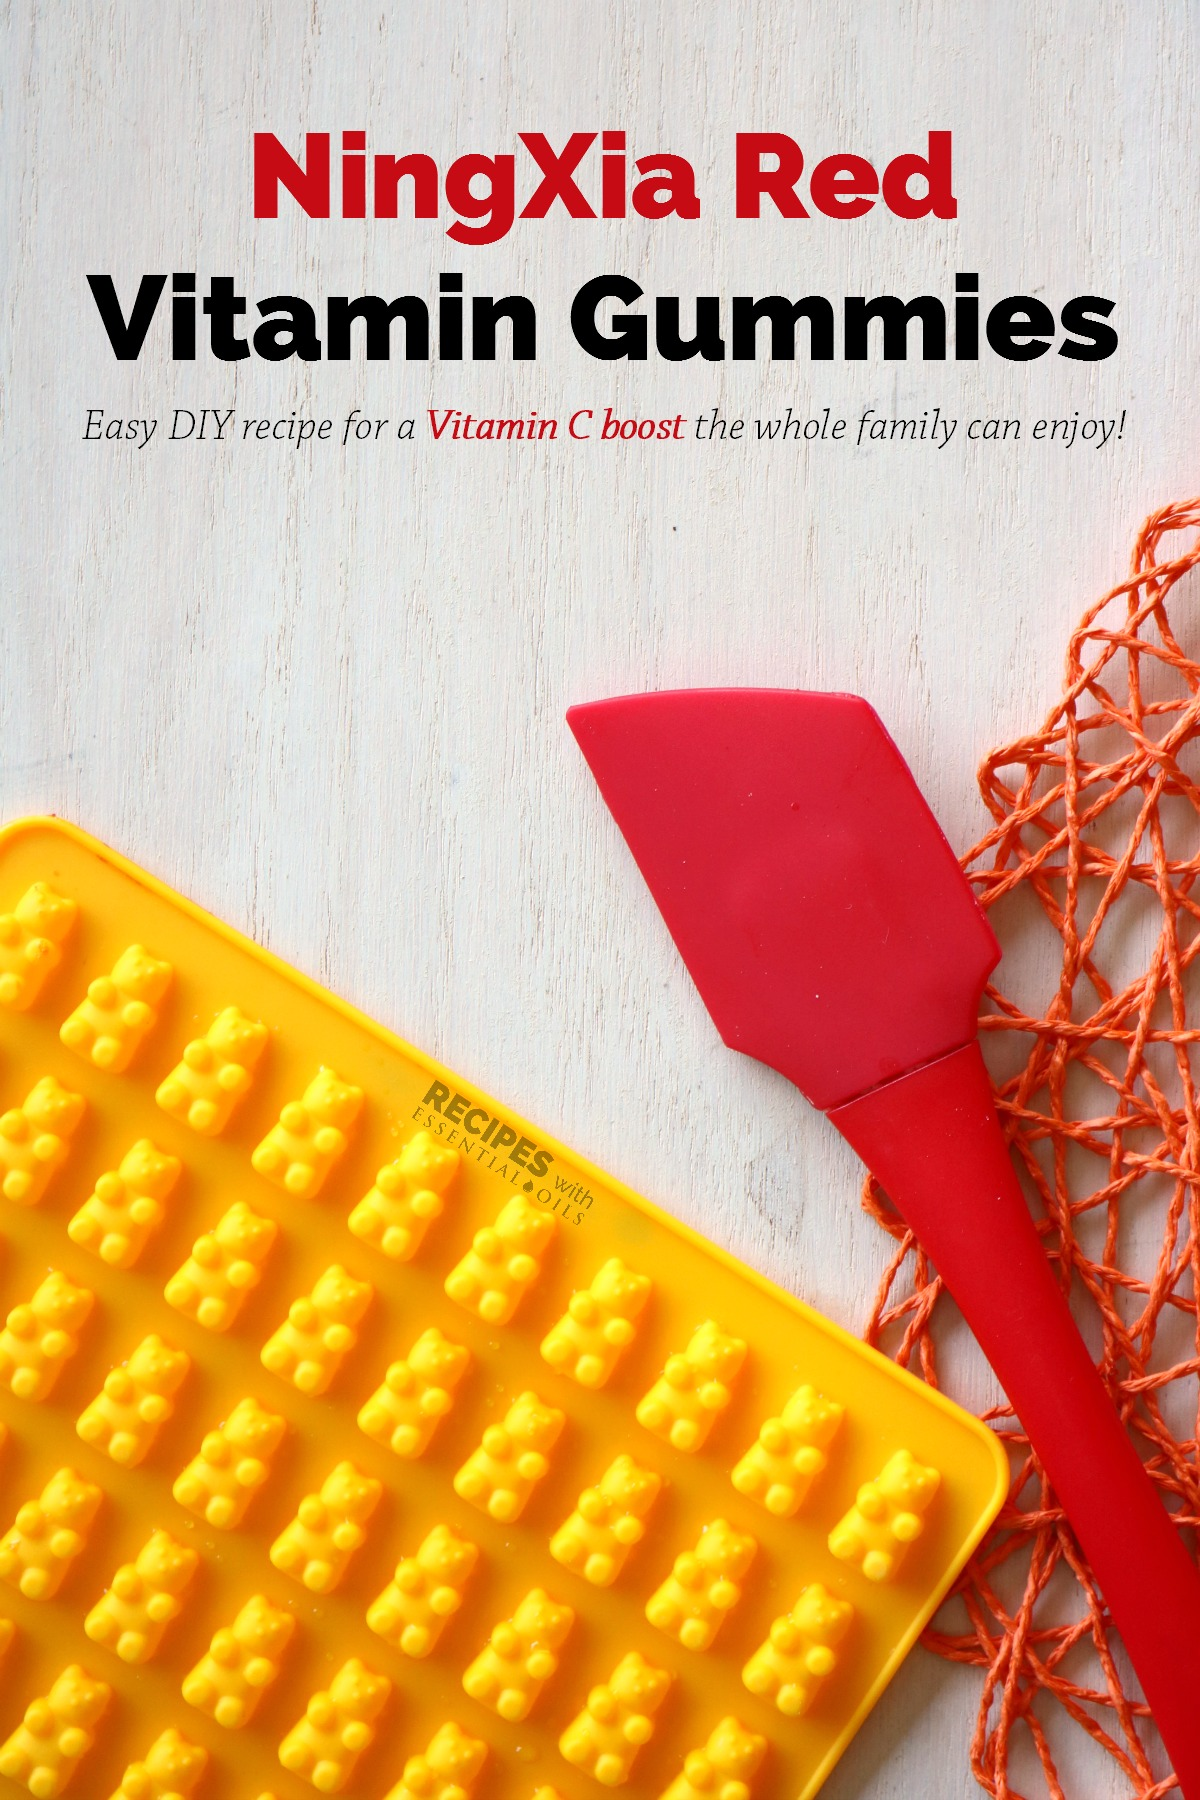 NingXia Red Vitamin Gummies Recipe from RecipeswithEssentialOils.com